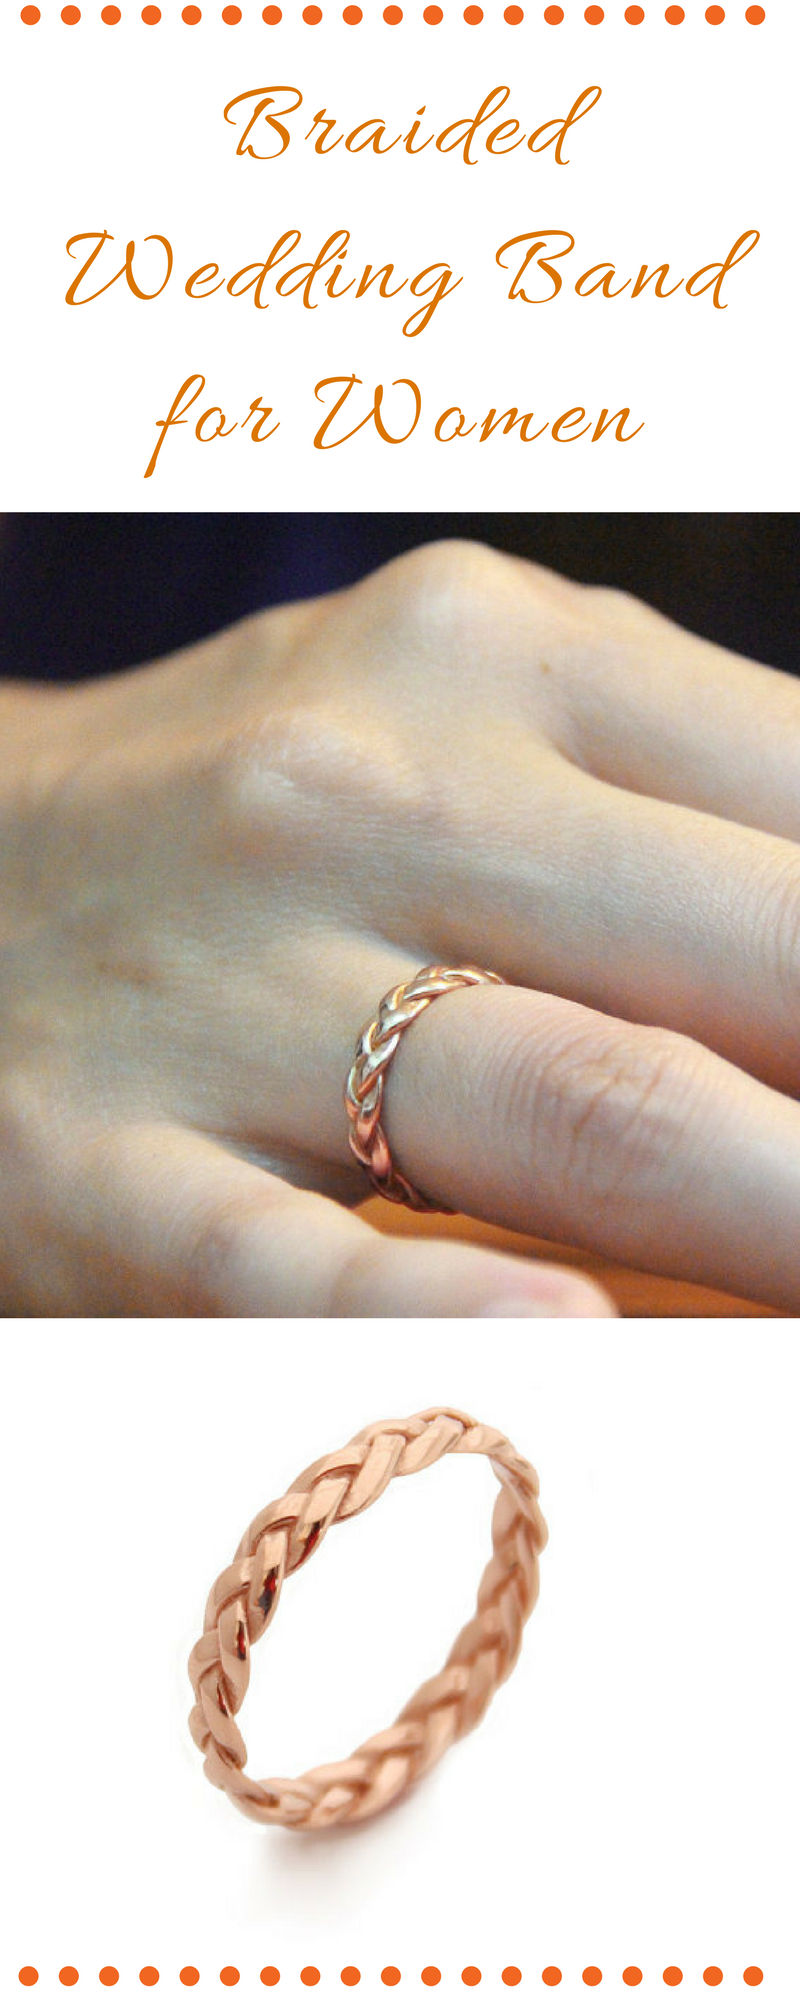 Braided Wedding Band for Women Braided Ring Rose Gold